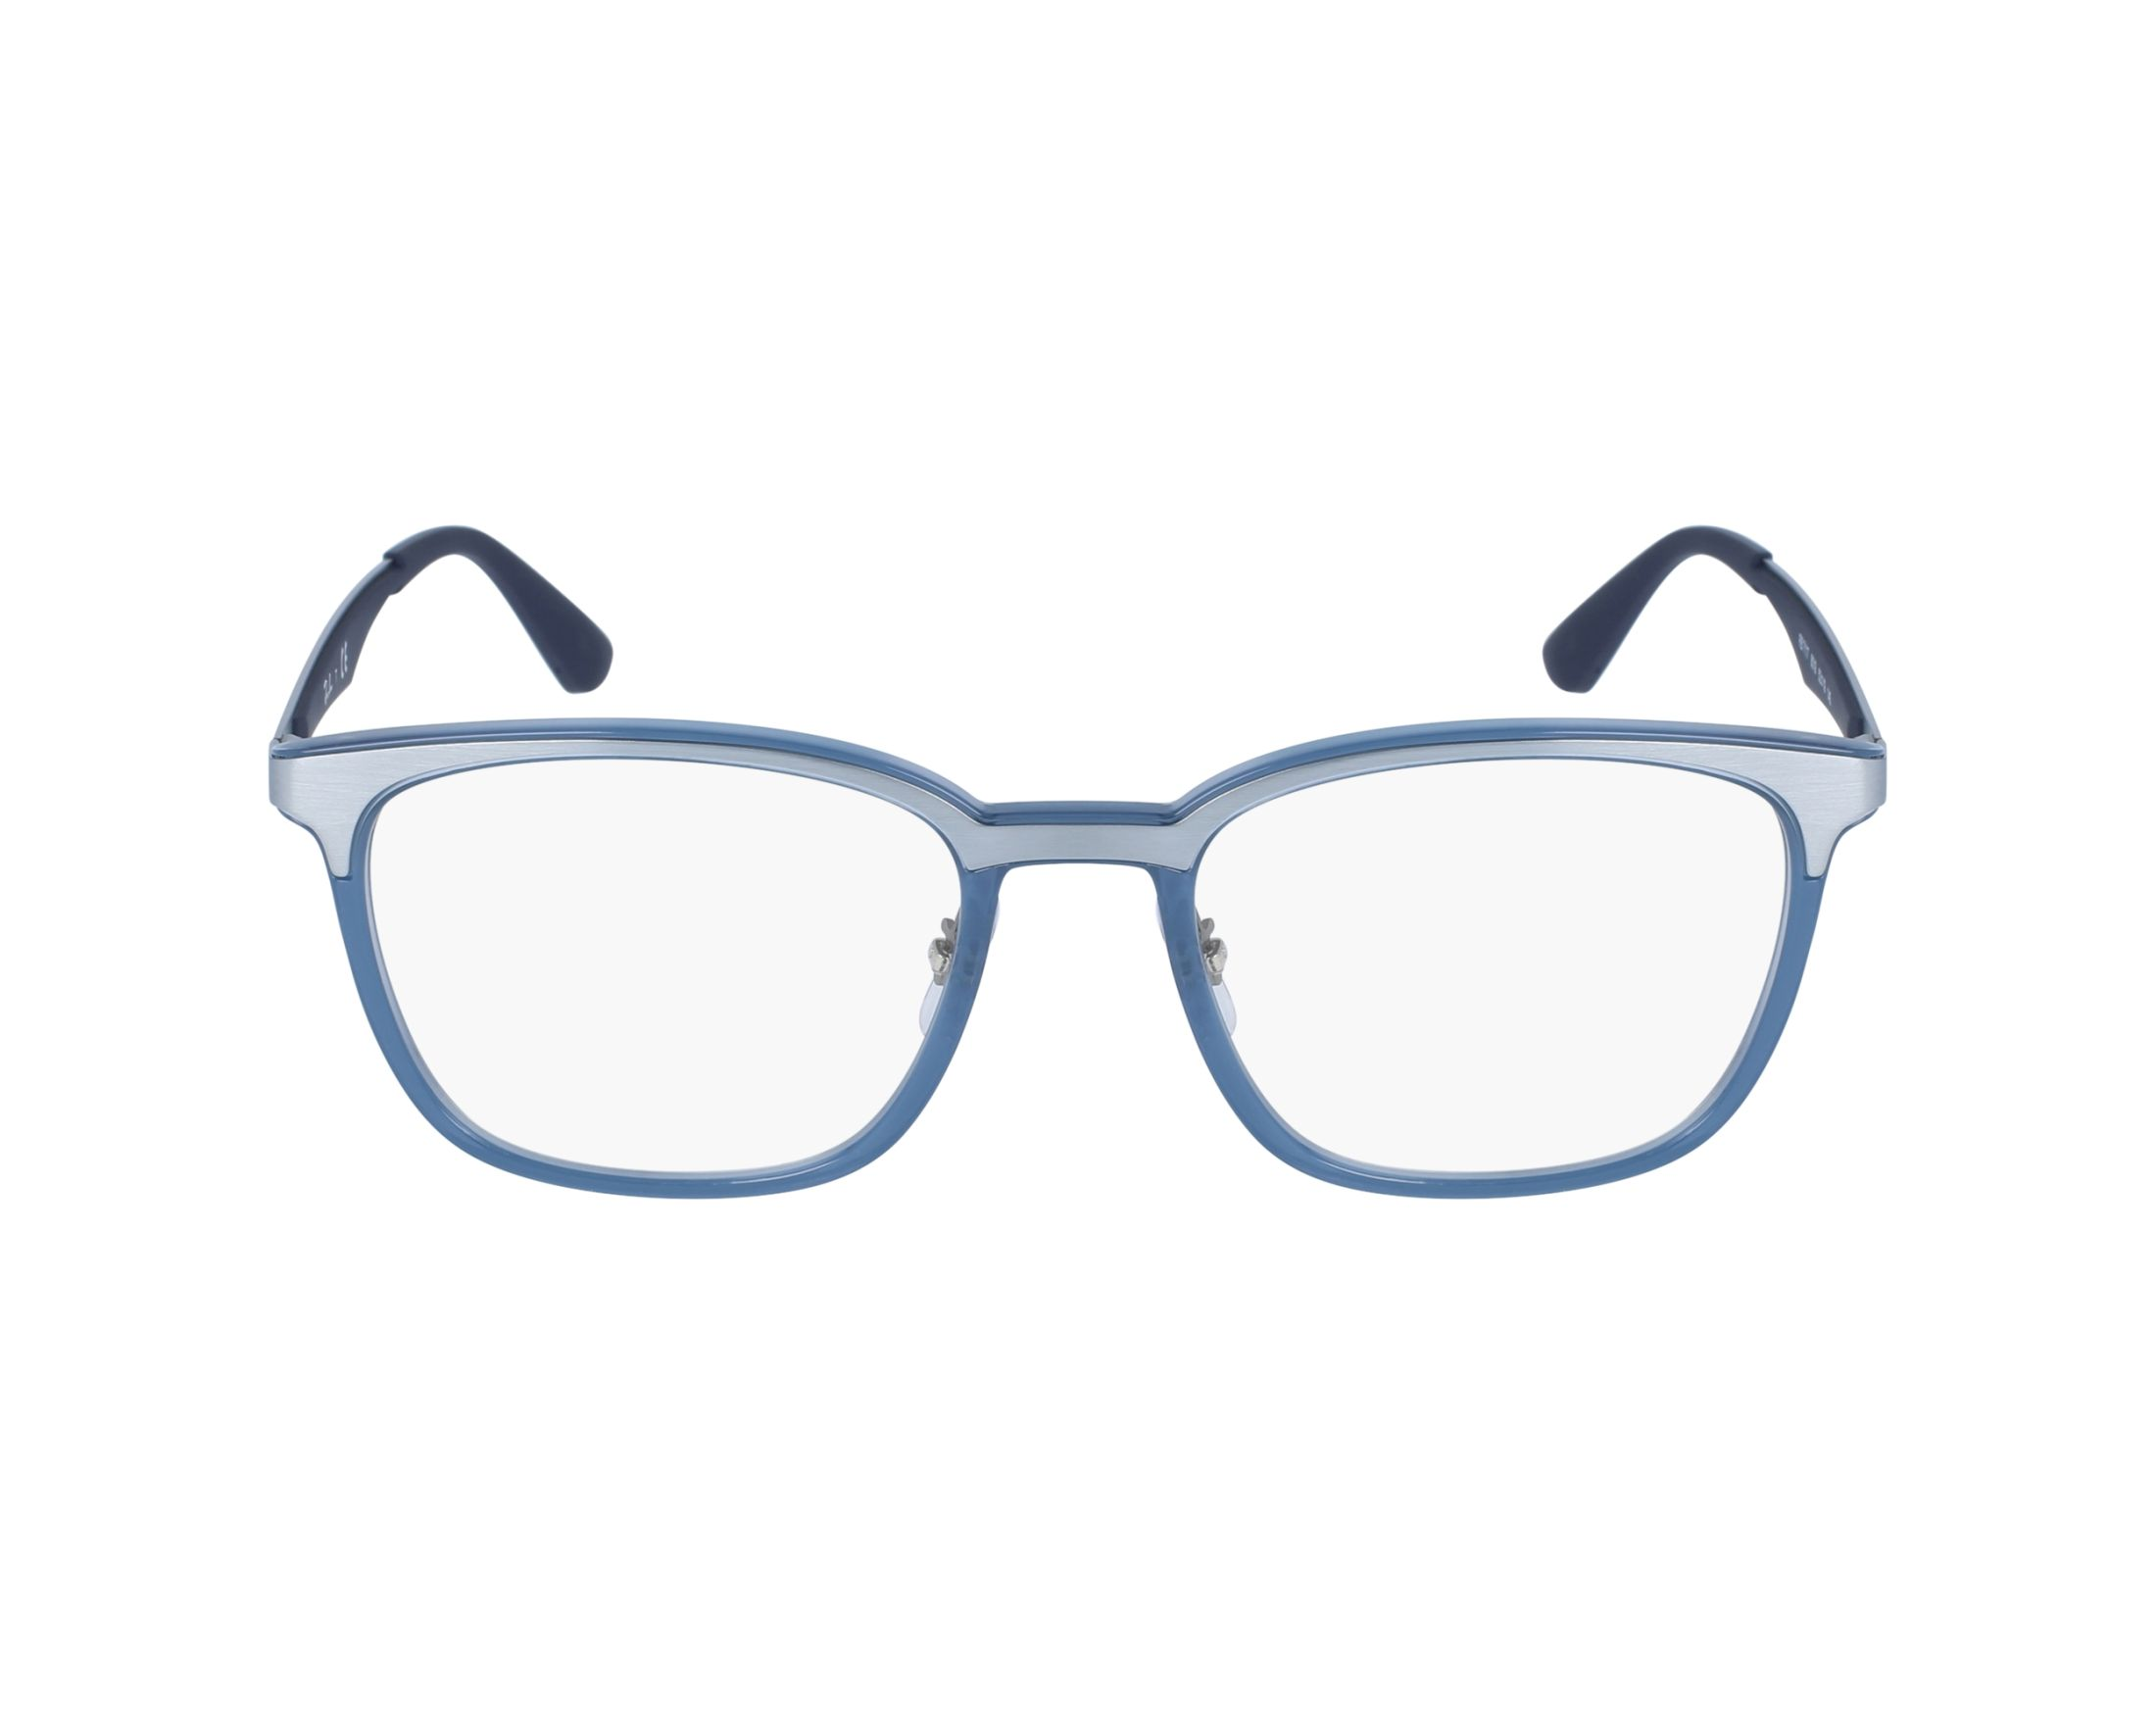 8ab35dc40291f eyeglasses Ray-Ban RX-7117 8019 - Silver Blue profile view